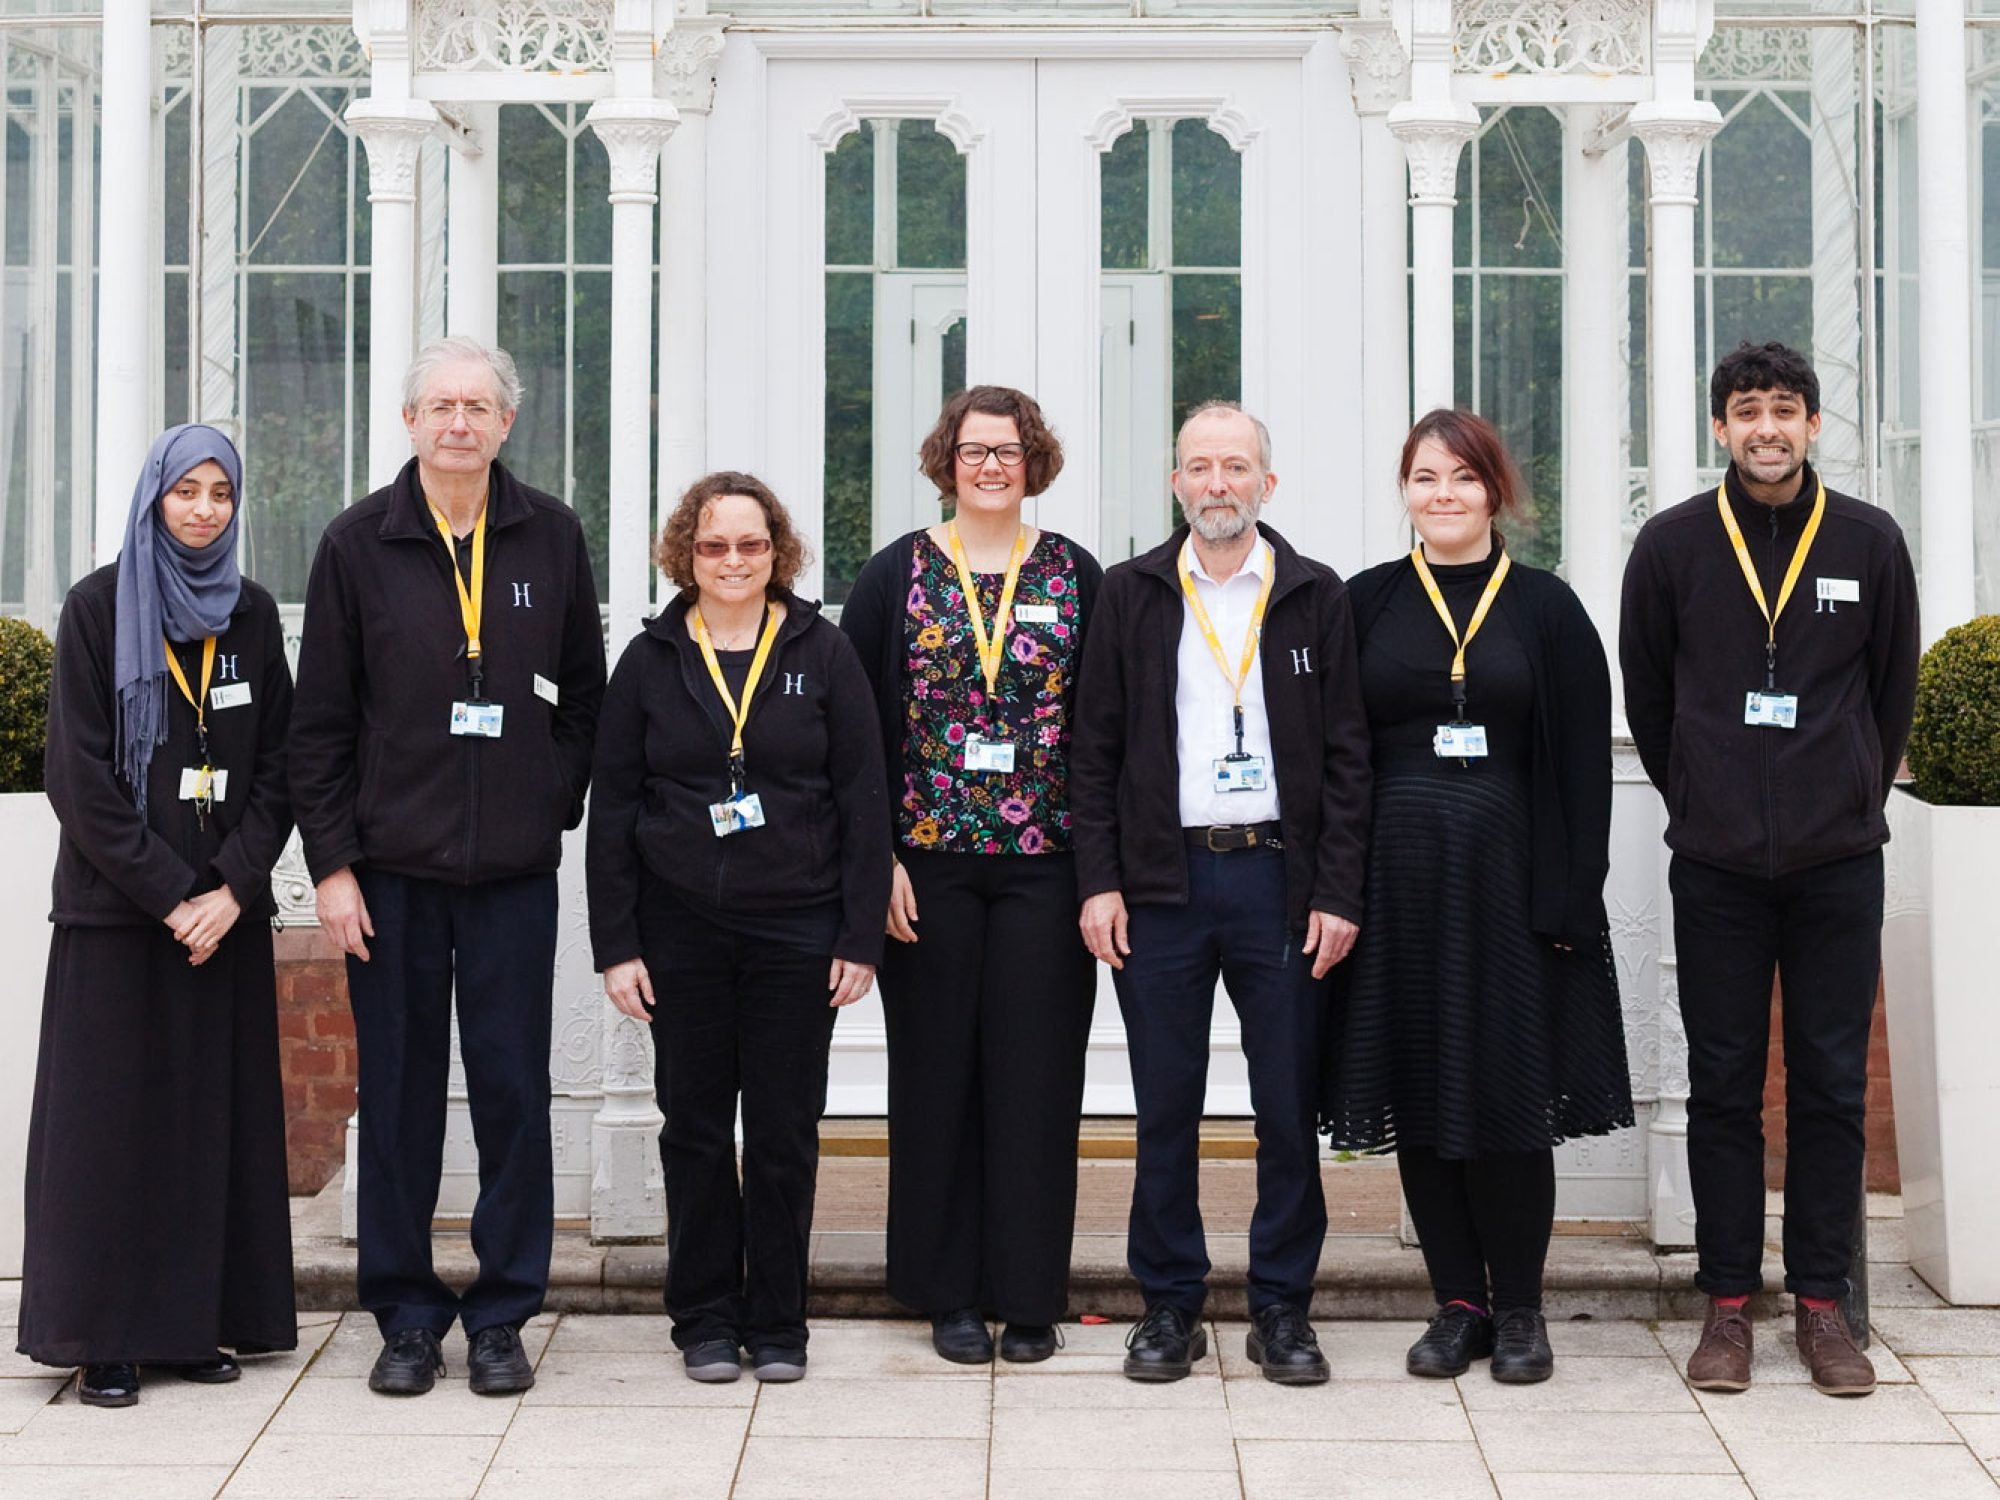 A line of people wearing mainly black outfits with yellow lanyards around their necks stand in front of a white glass house